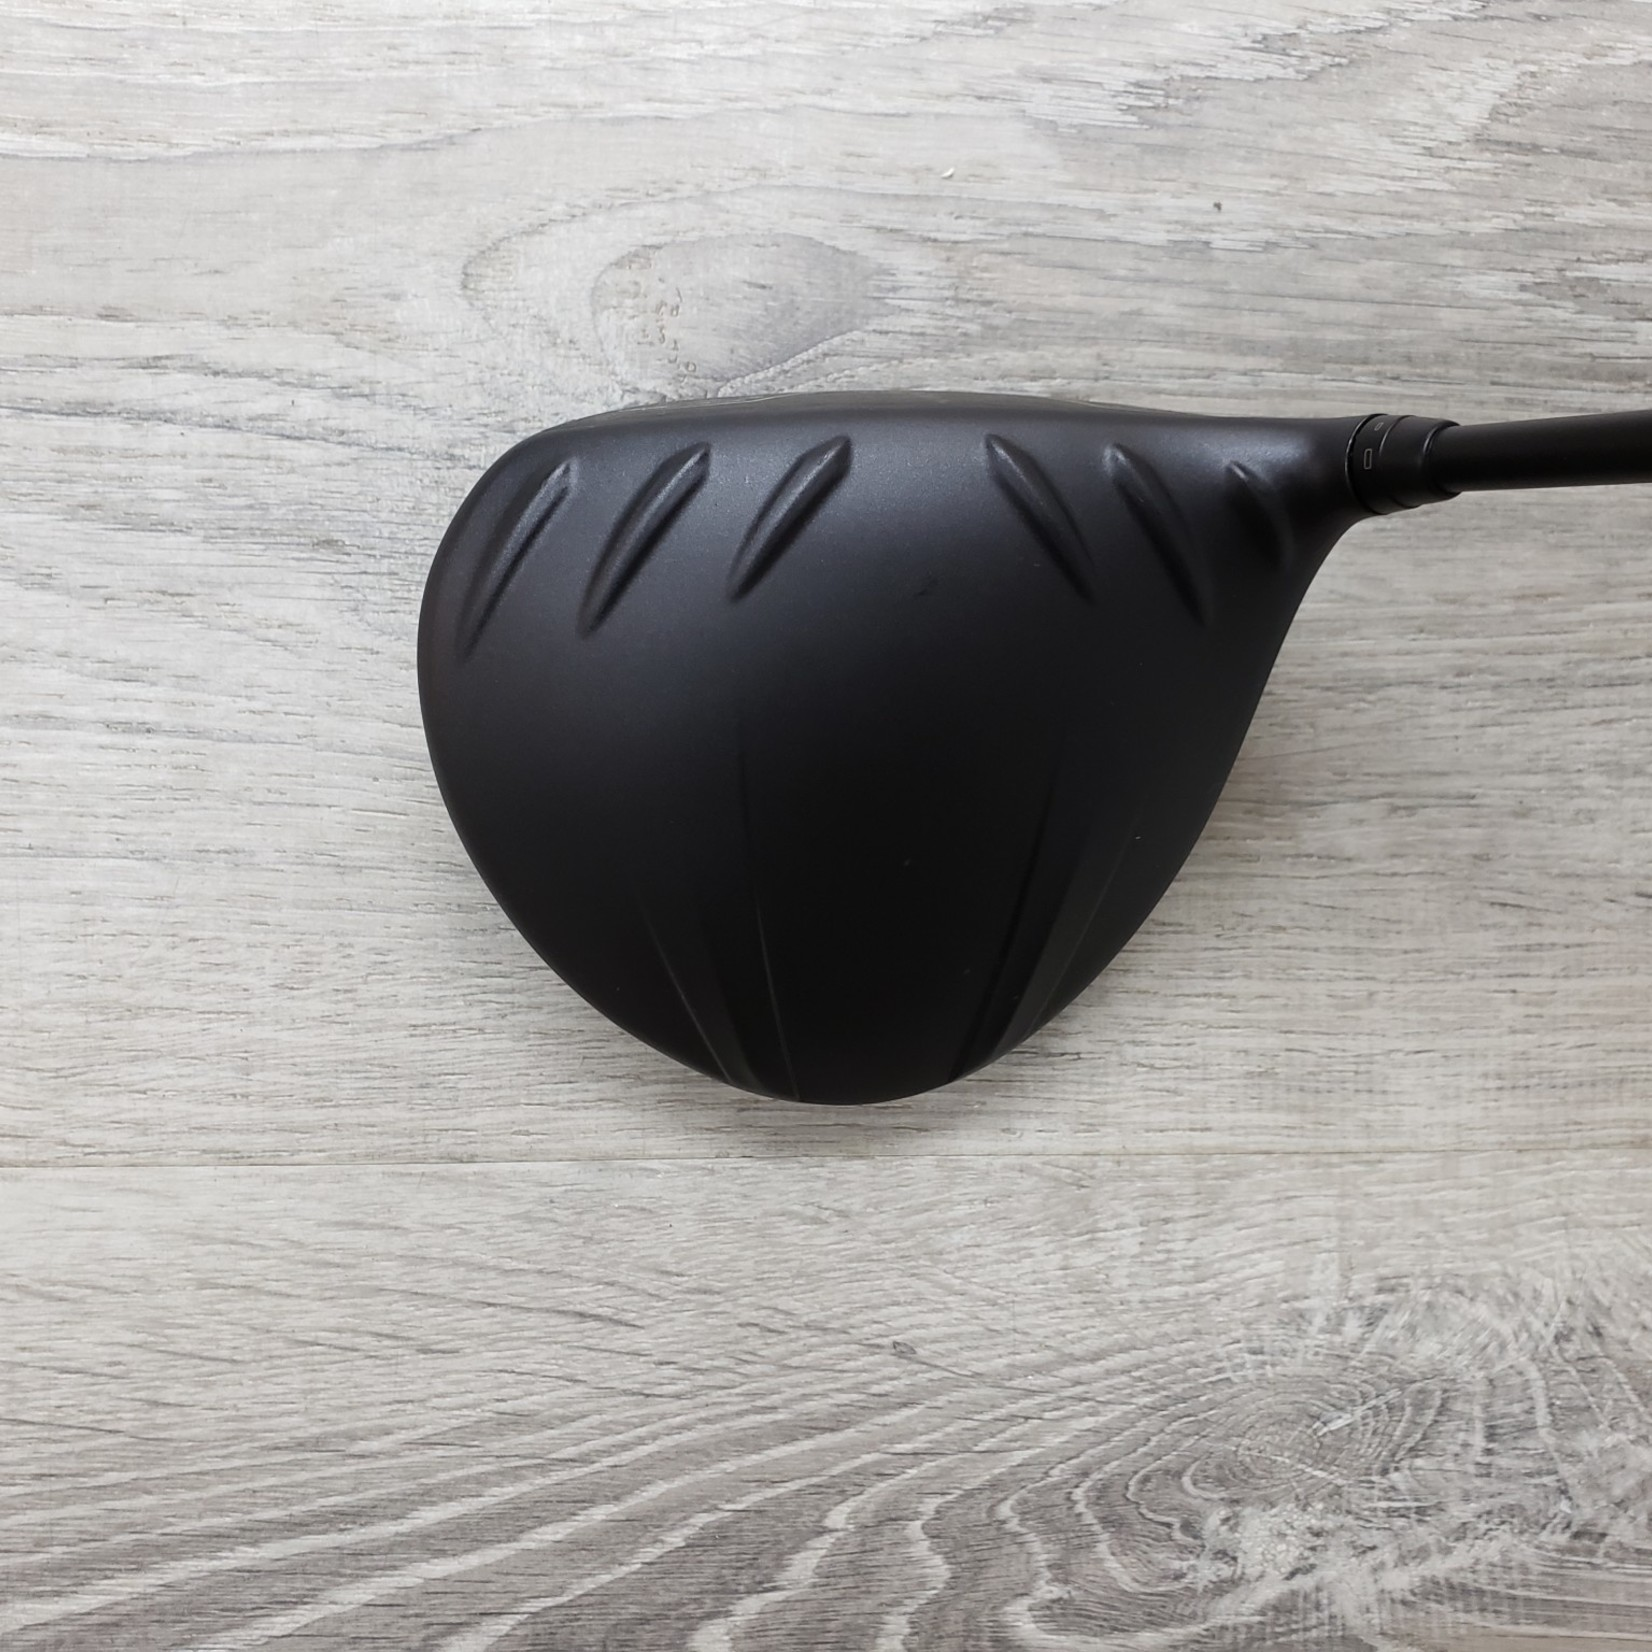 PING PING G410 LST Driver 10.5* HZRDUS 76g Stiff (LH)